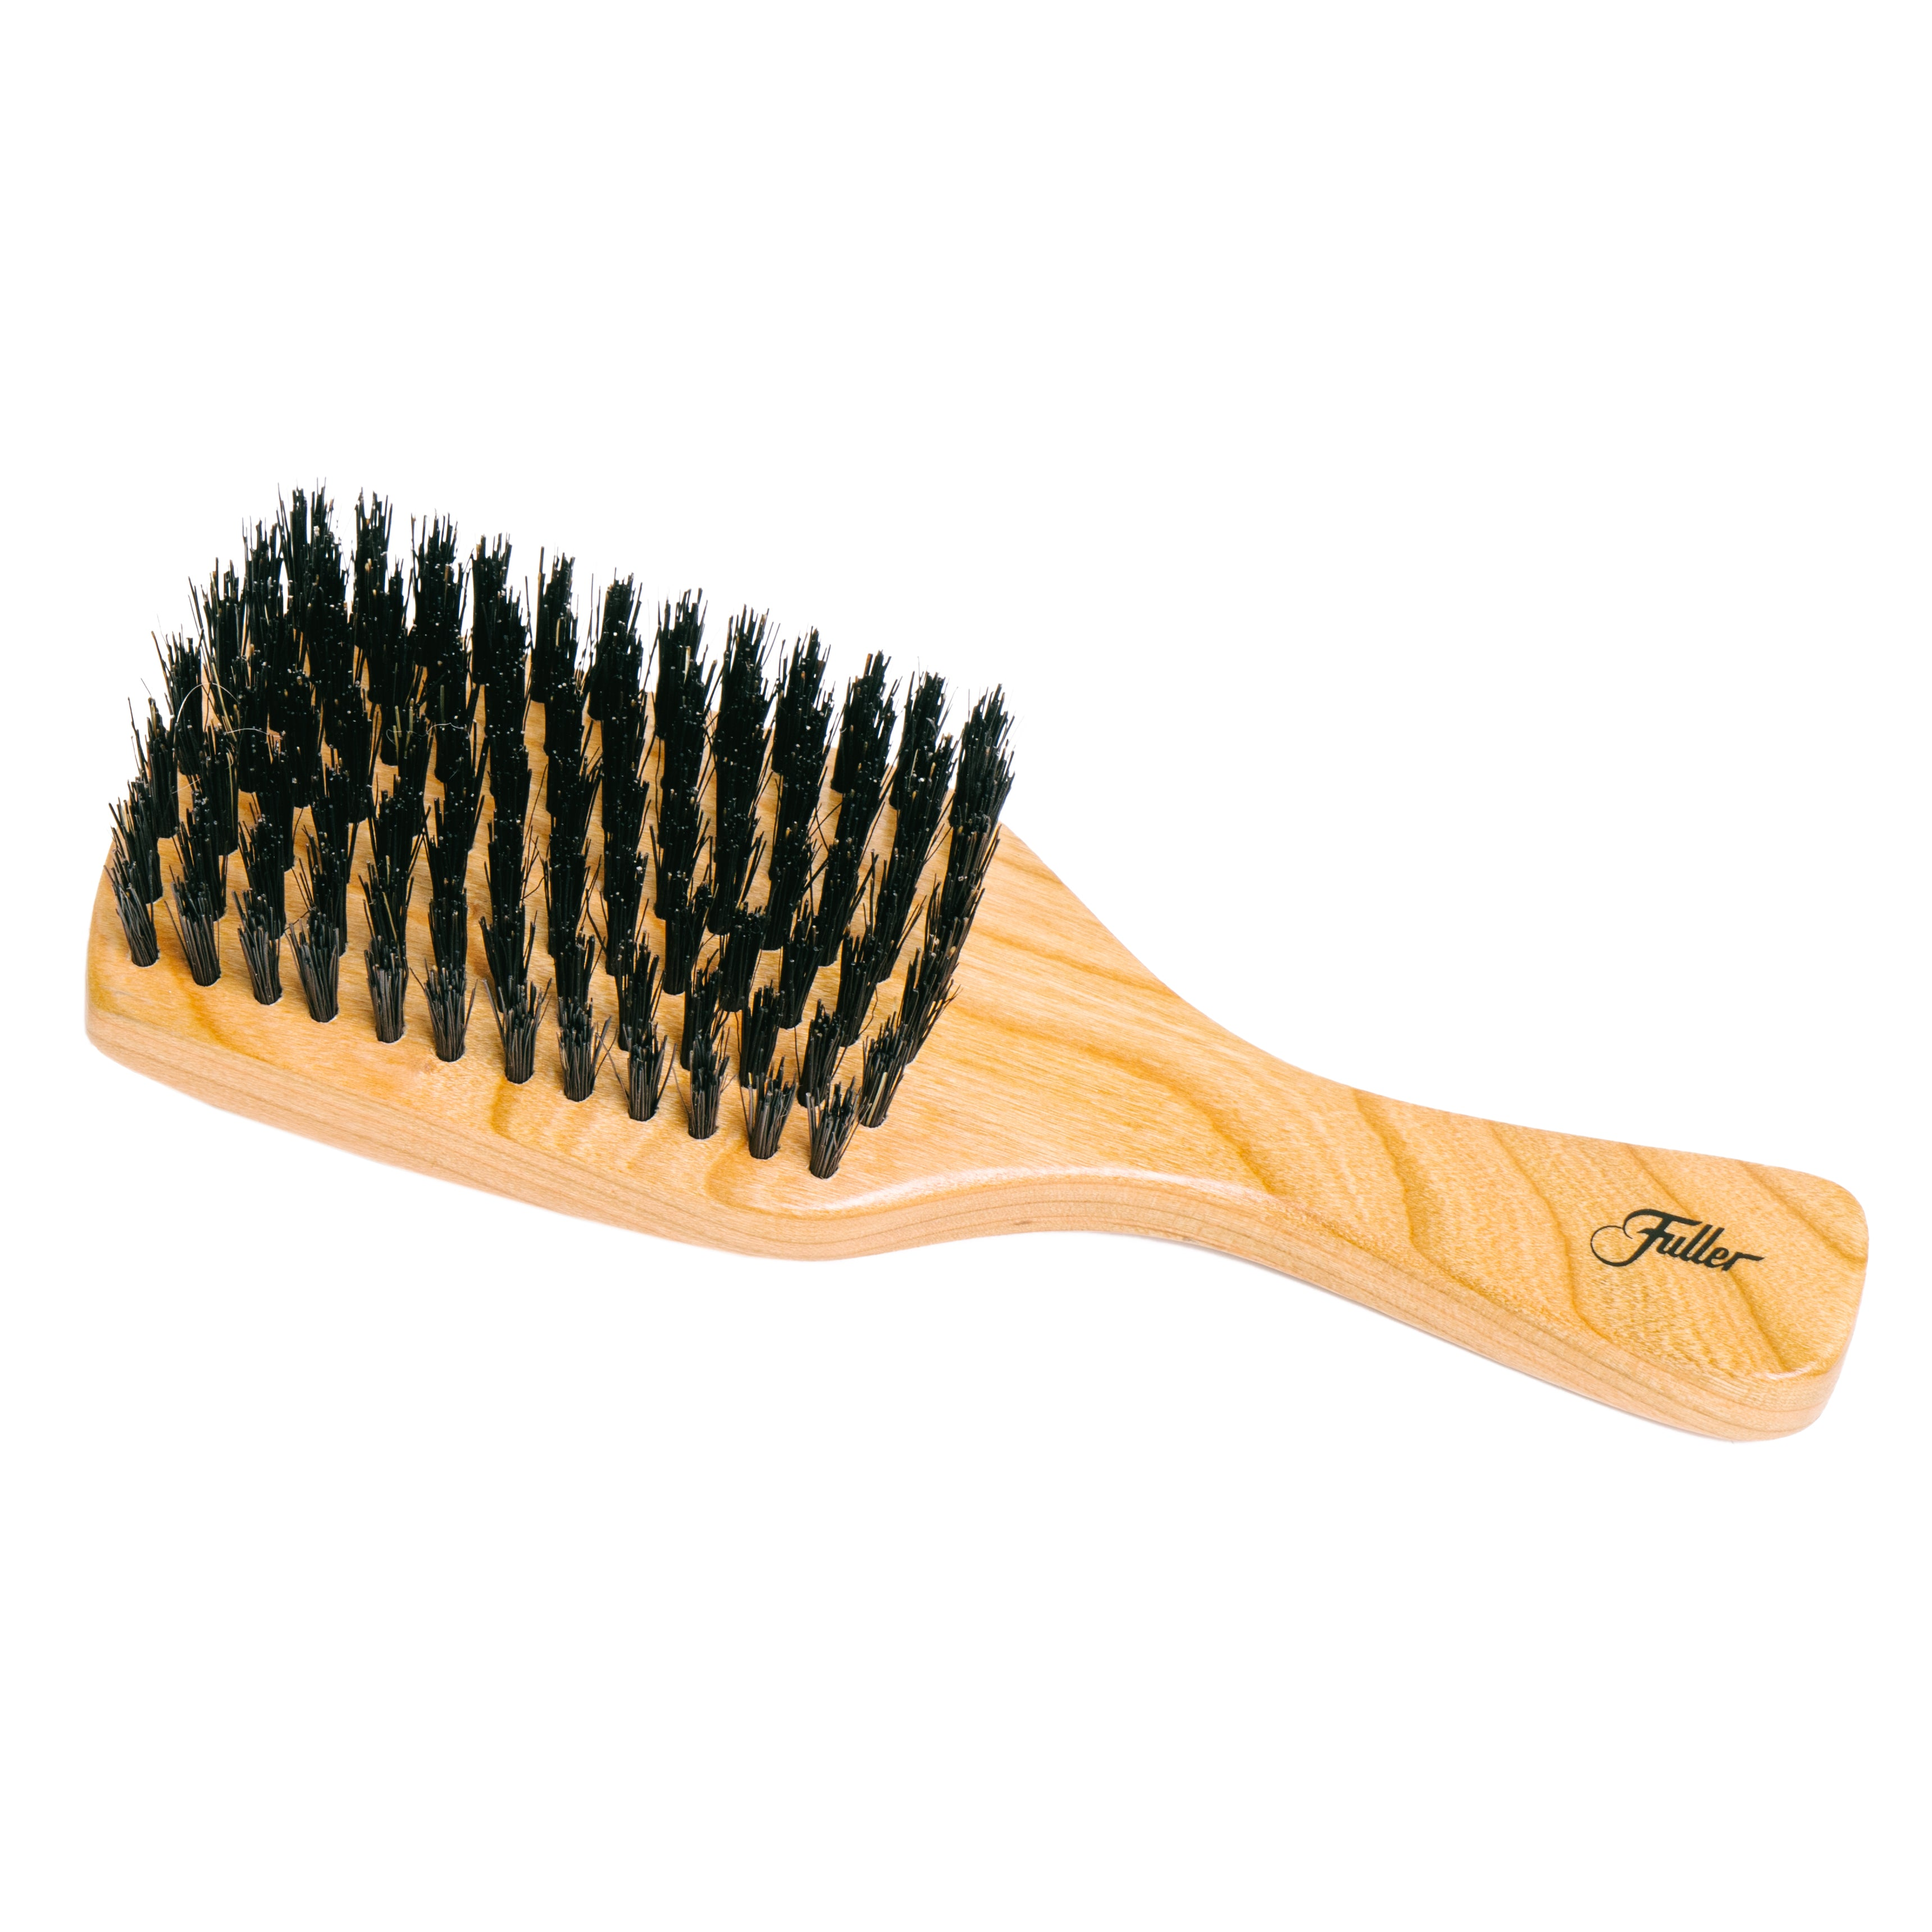 Cherry Club Wood Hairbrush with Natural Boars Hair Bristles